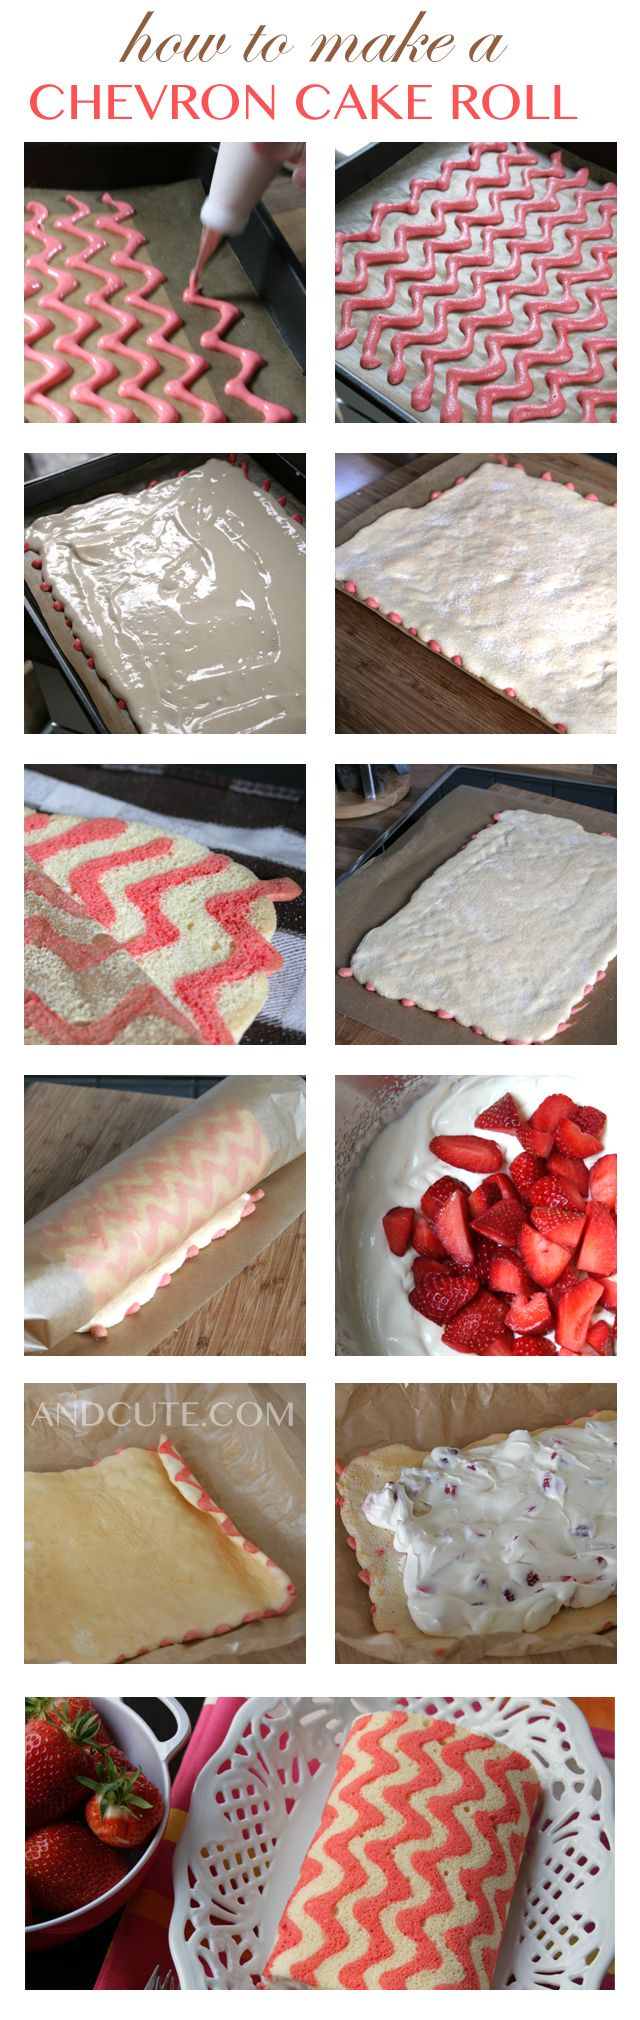 HOW TO: Chevron Cake Roll: Food, Chevron Cake Rolls, Chevron Cakes, Dessert